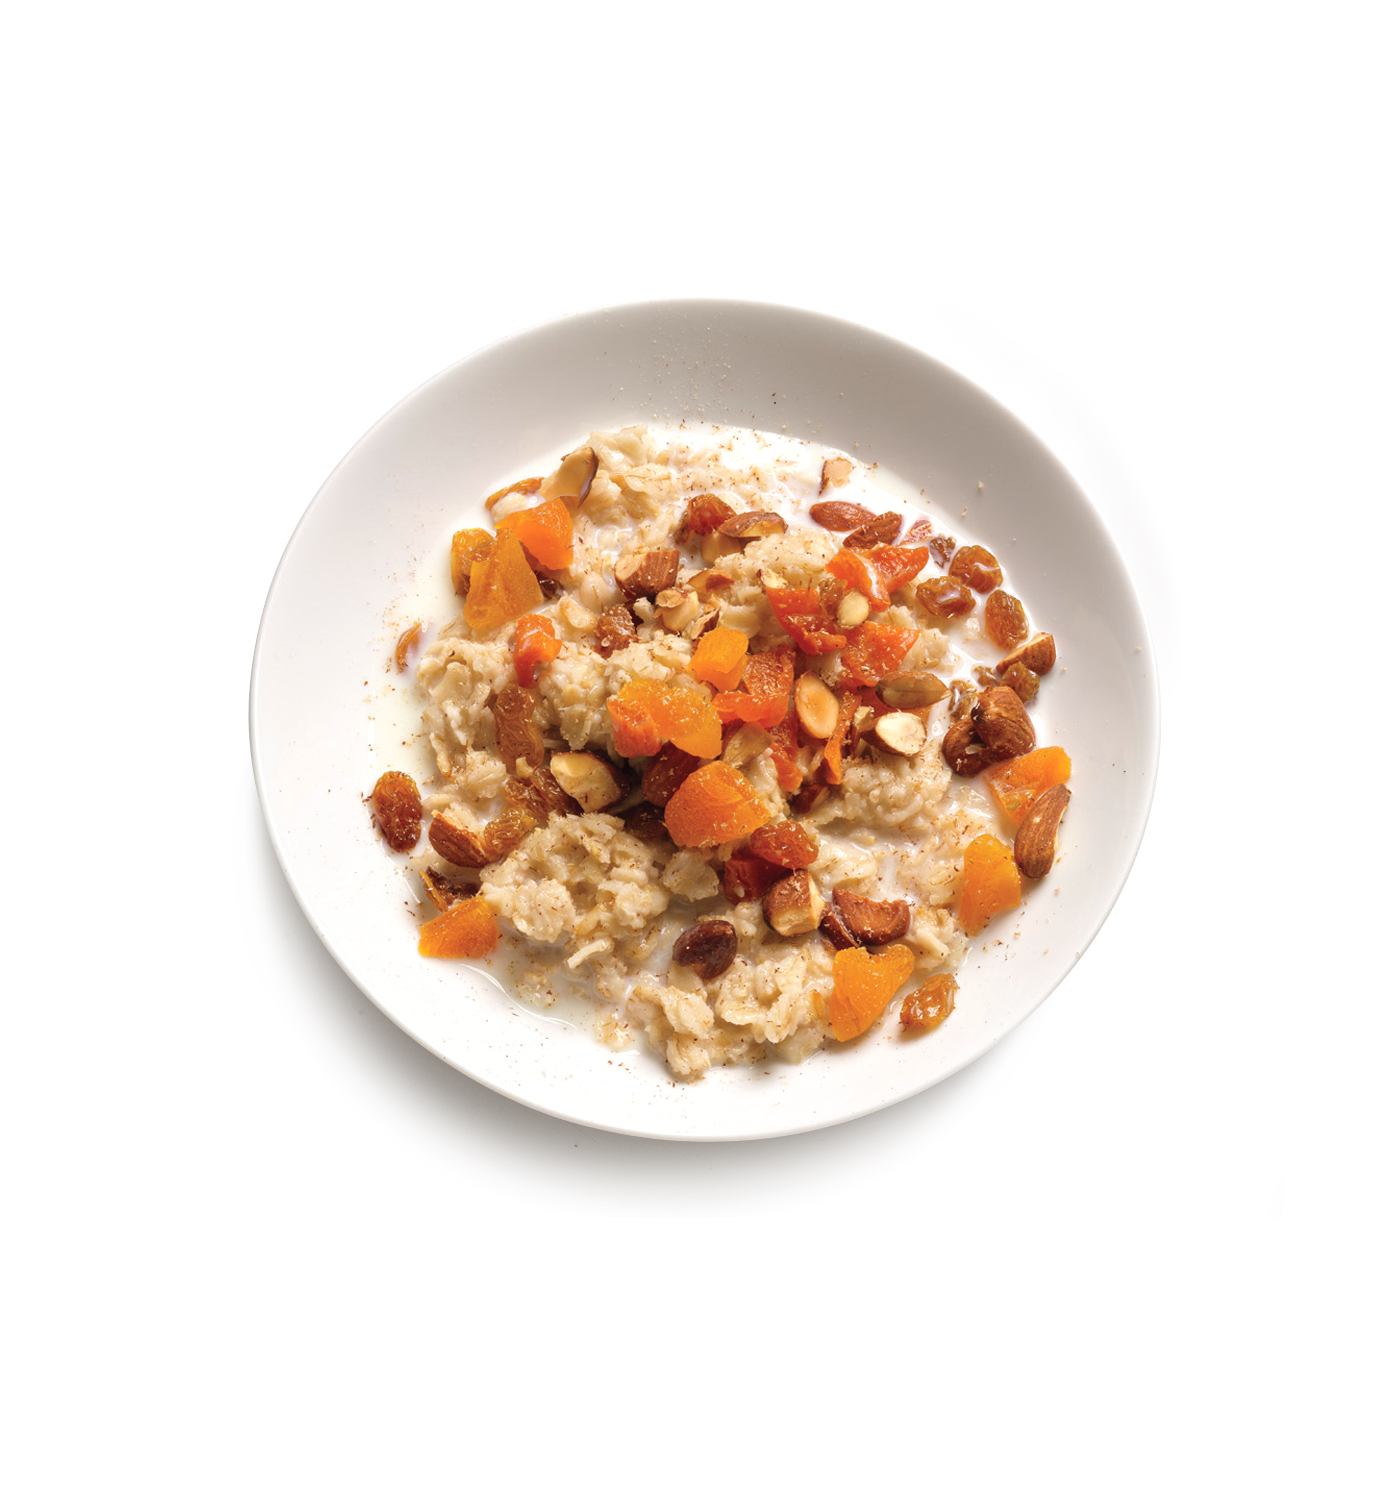 Oatmeal With Apricots and Raisins